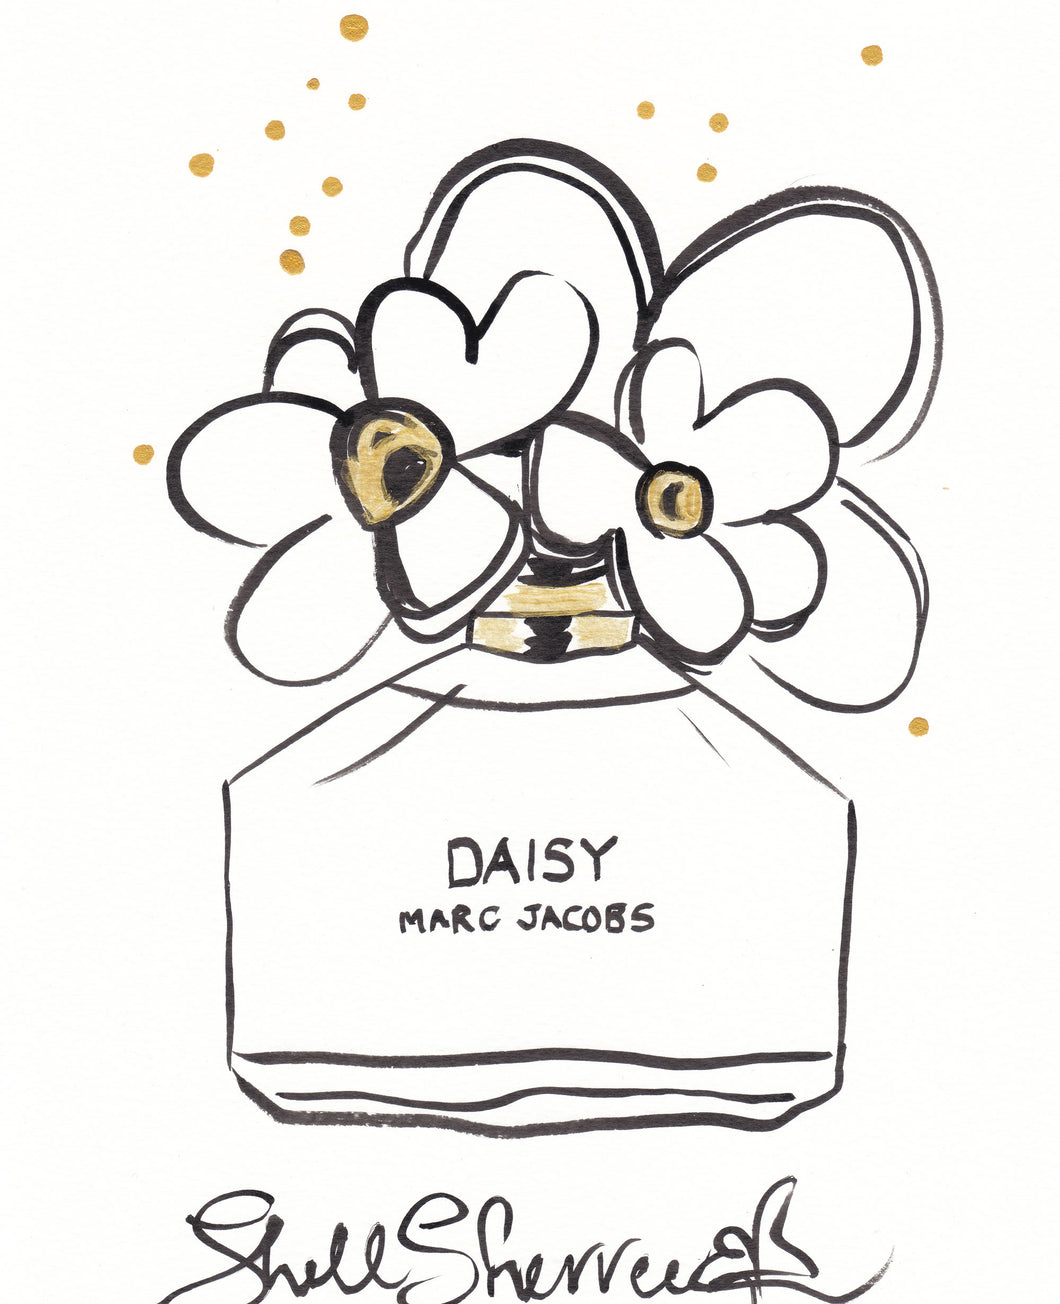 marc jacobs daisy original painting shell sherree